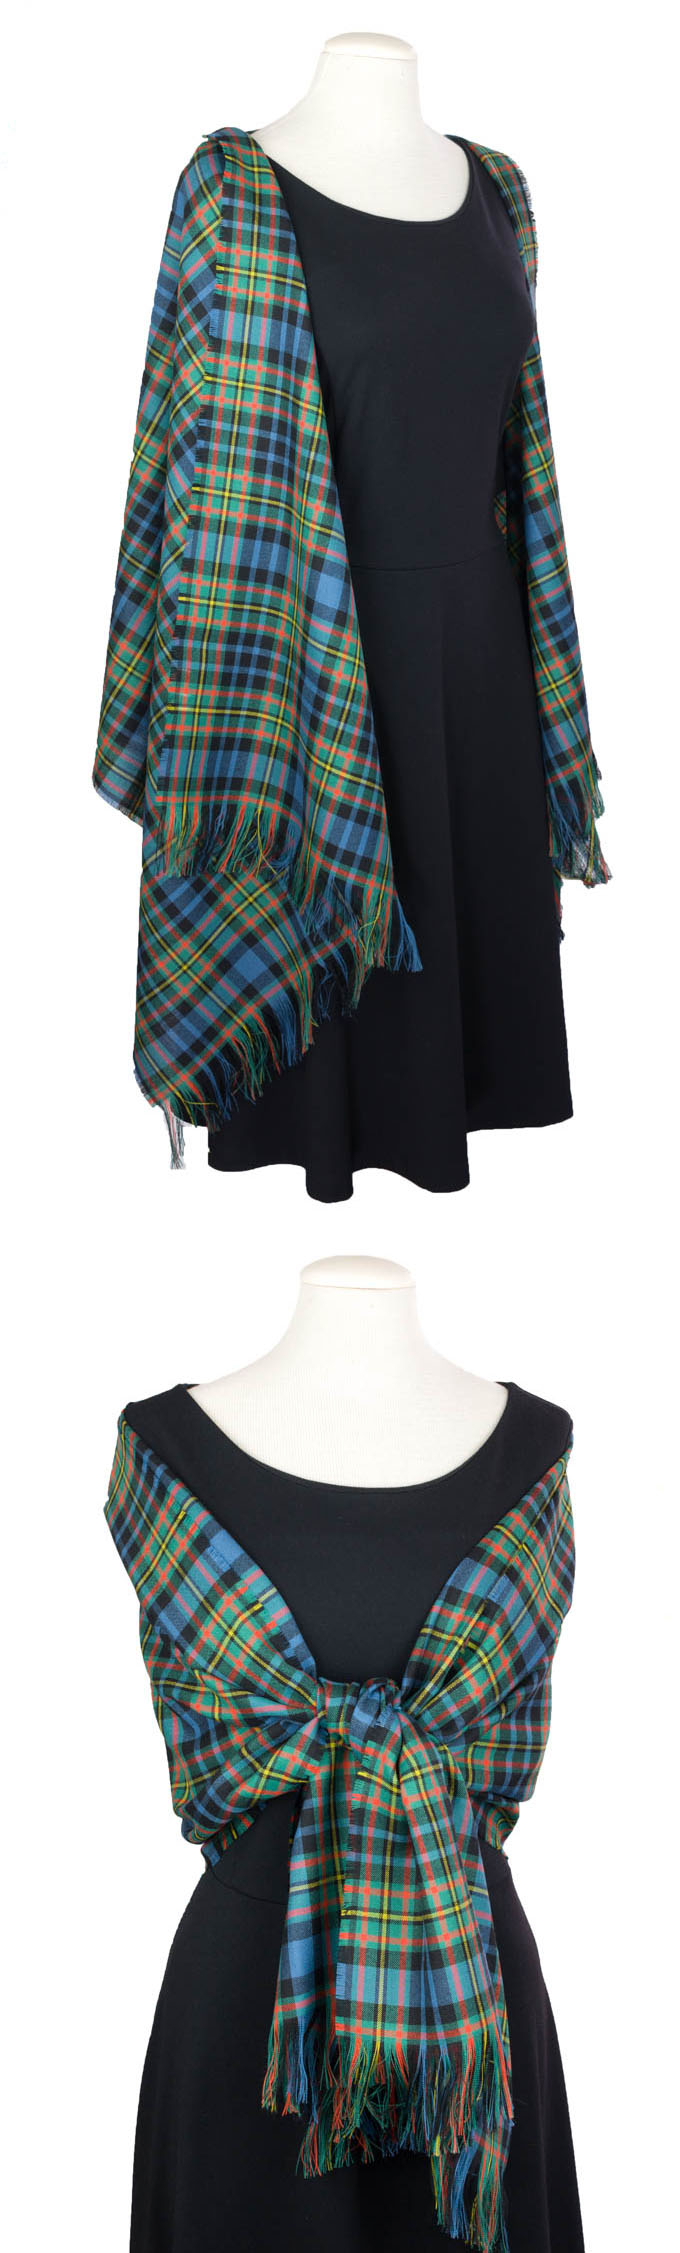 Stole, Lightweight Wool Tartan, plain weave